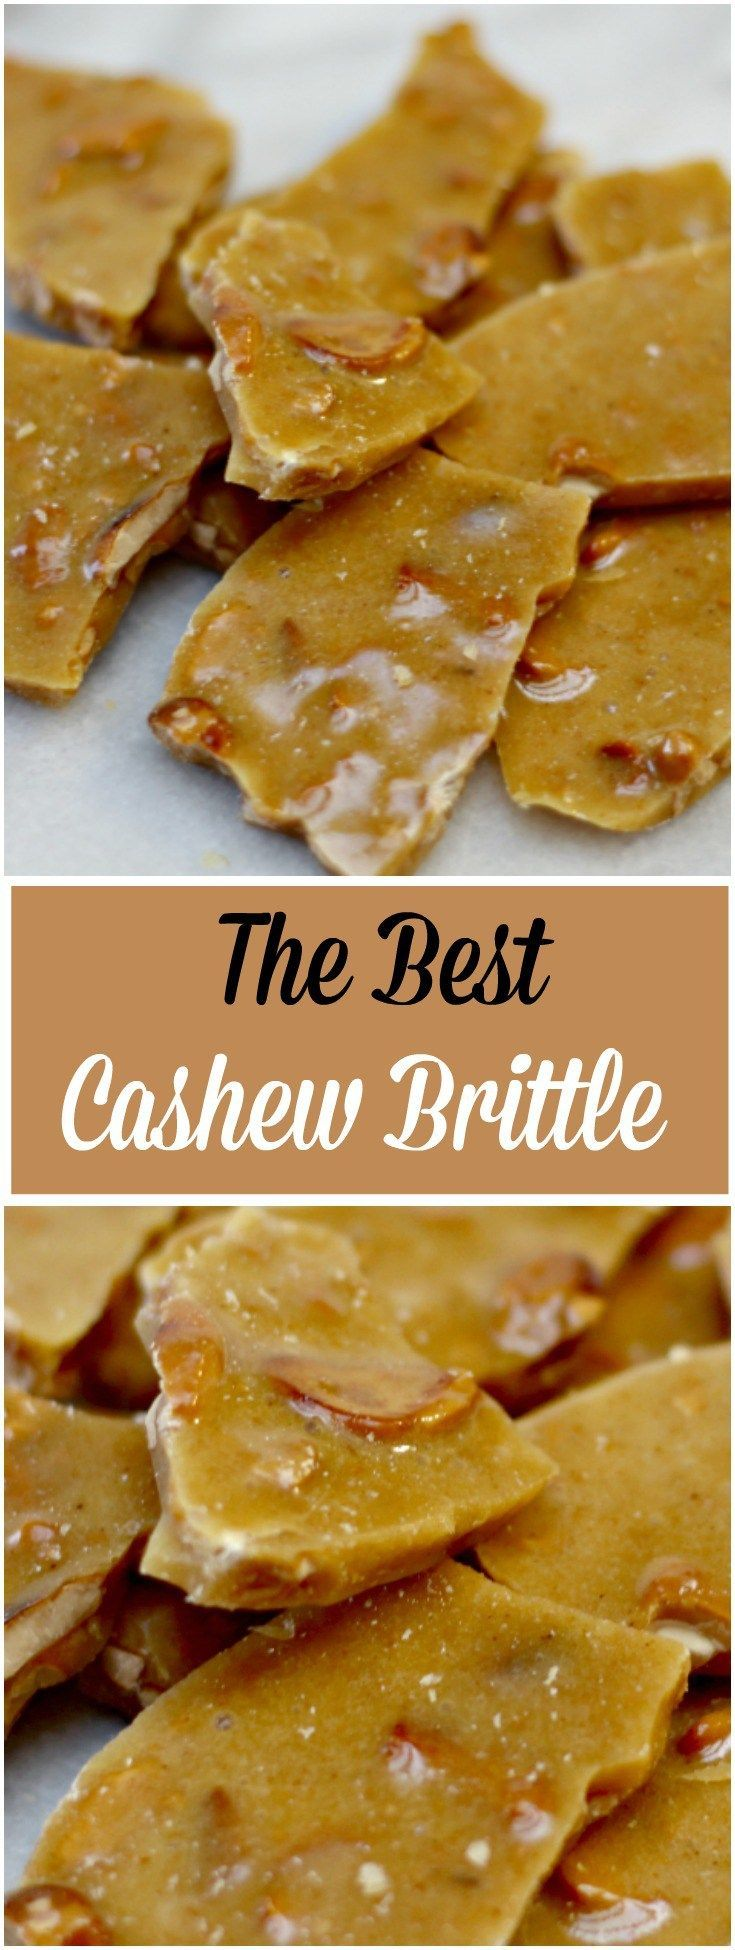 This is the Best Cashew Brittle Recipe I've made. I took my mother's famous peanut brittle recipe and switched it up a little. Yum!